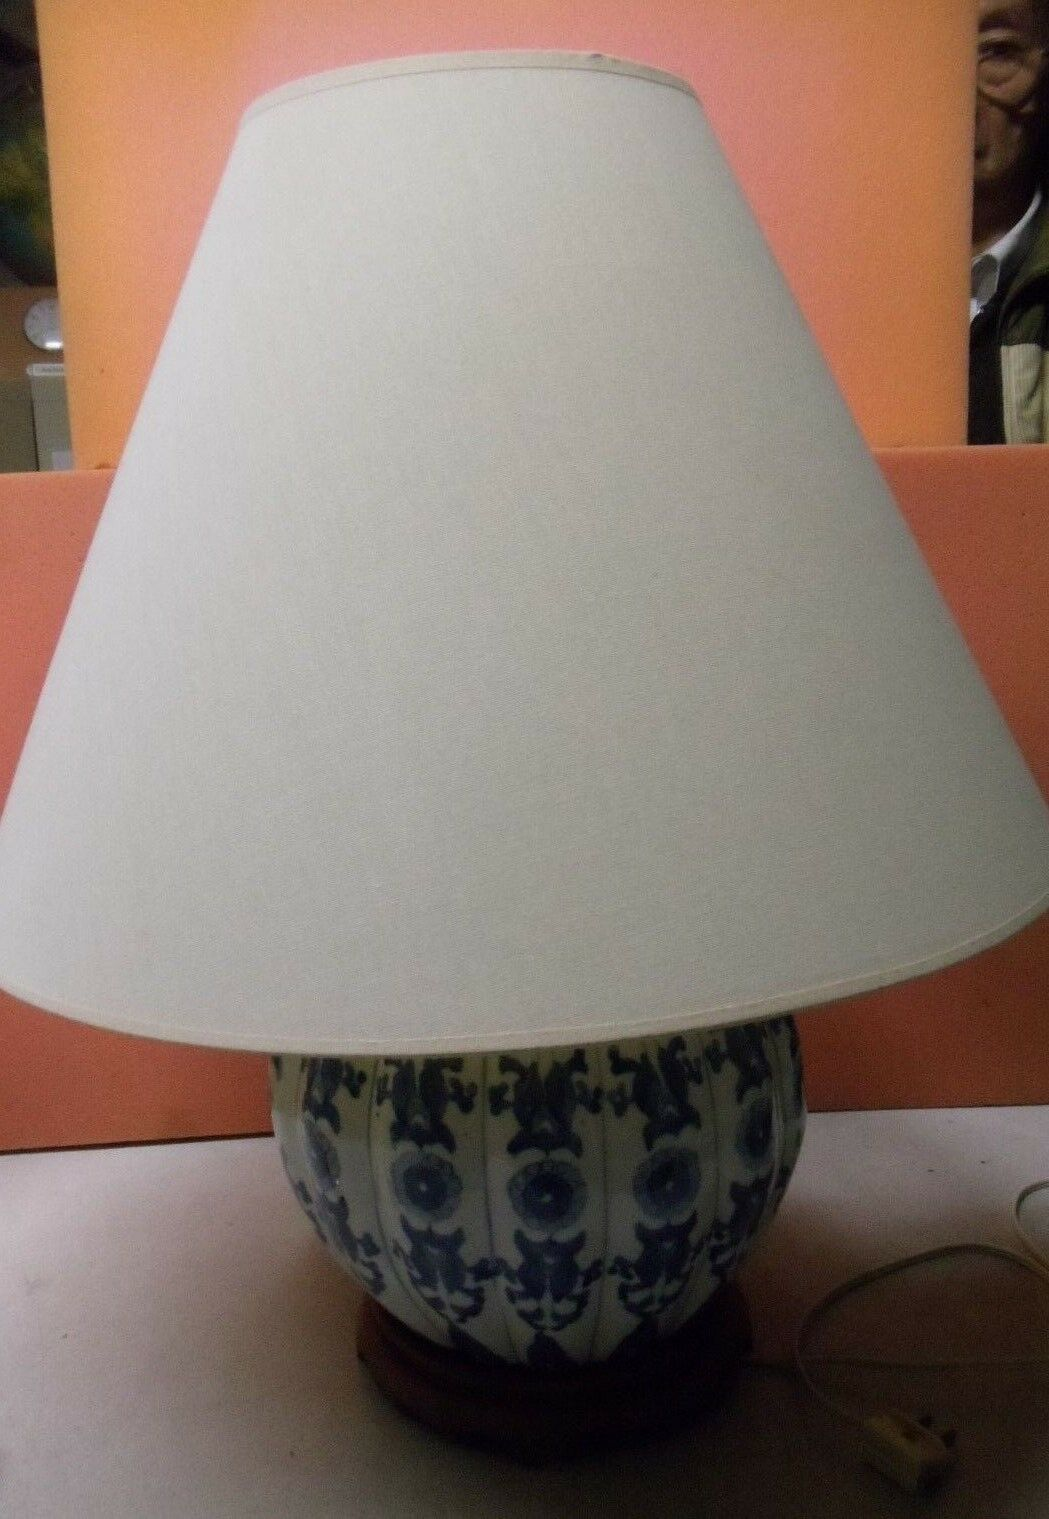 Vintage Porcelain Round Blau and Weiß Vase Shape Table Lamp by O'Marco